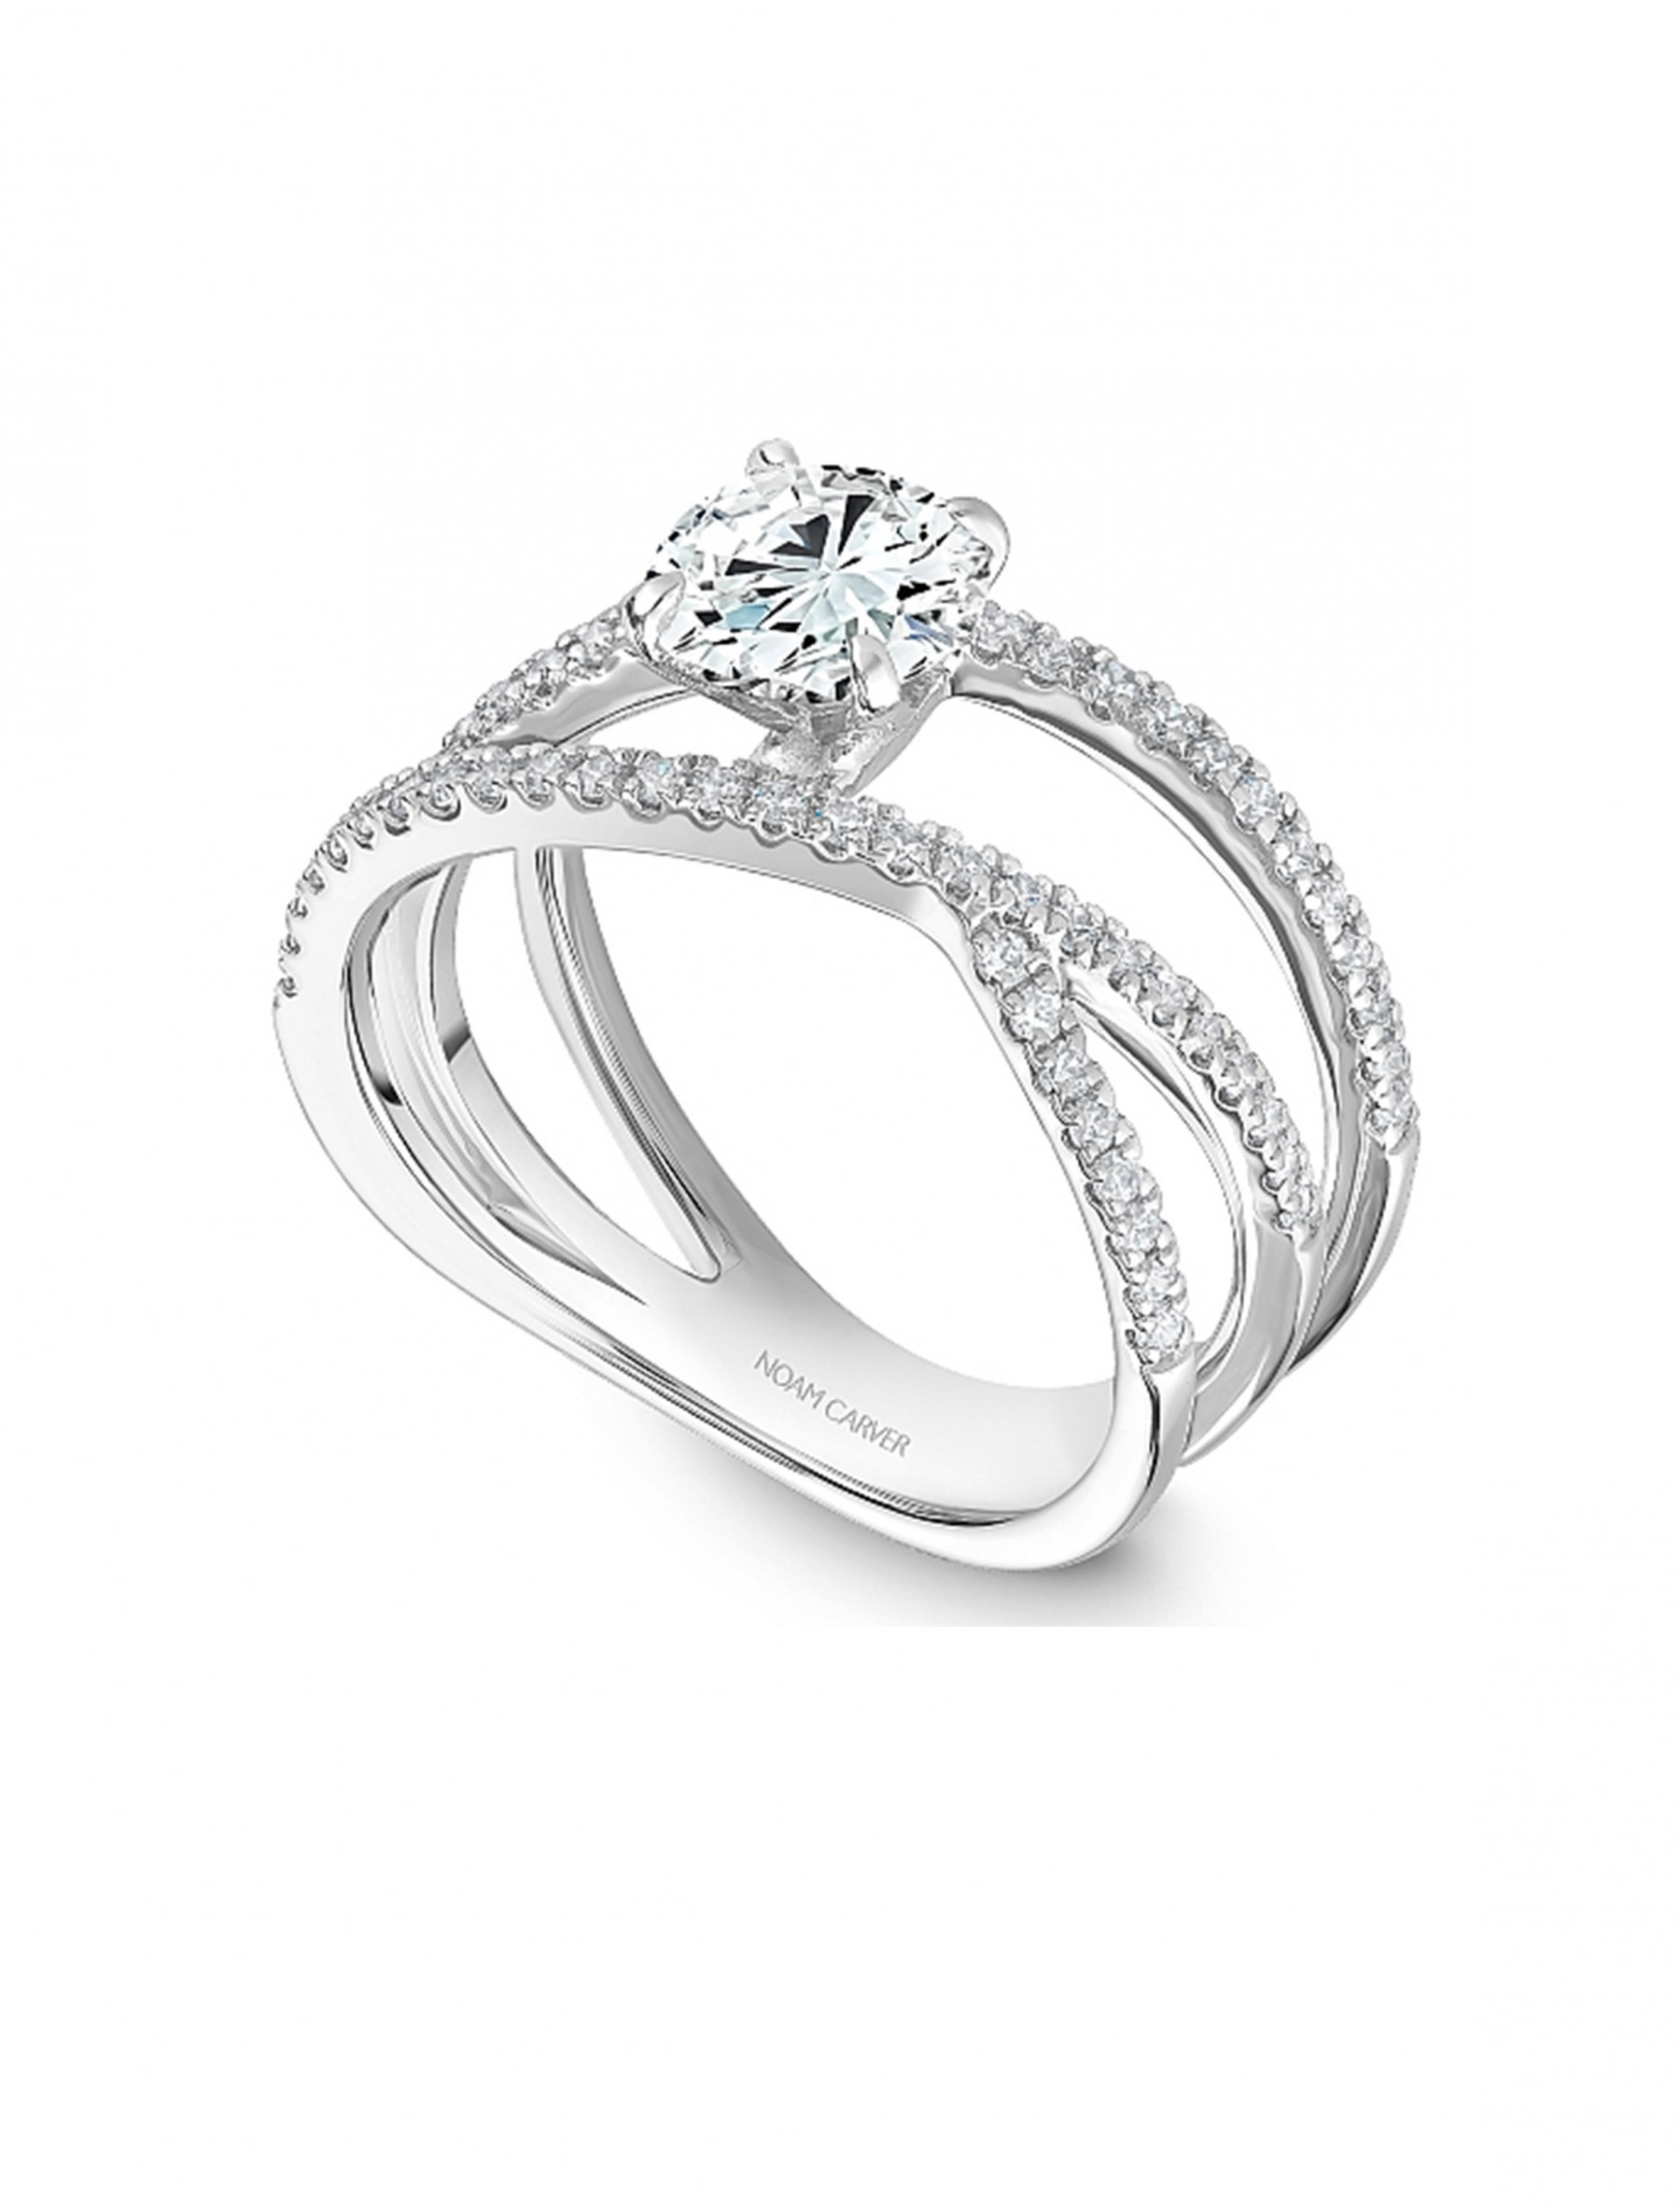 Noam Carver Round Pave Diamond Crossover Engagement Ring Setting top angle view